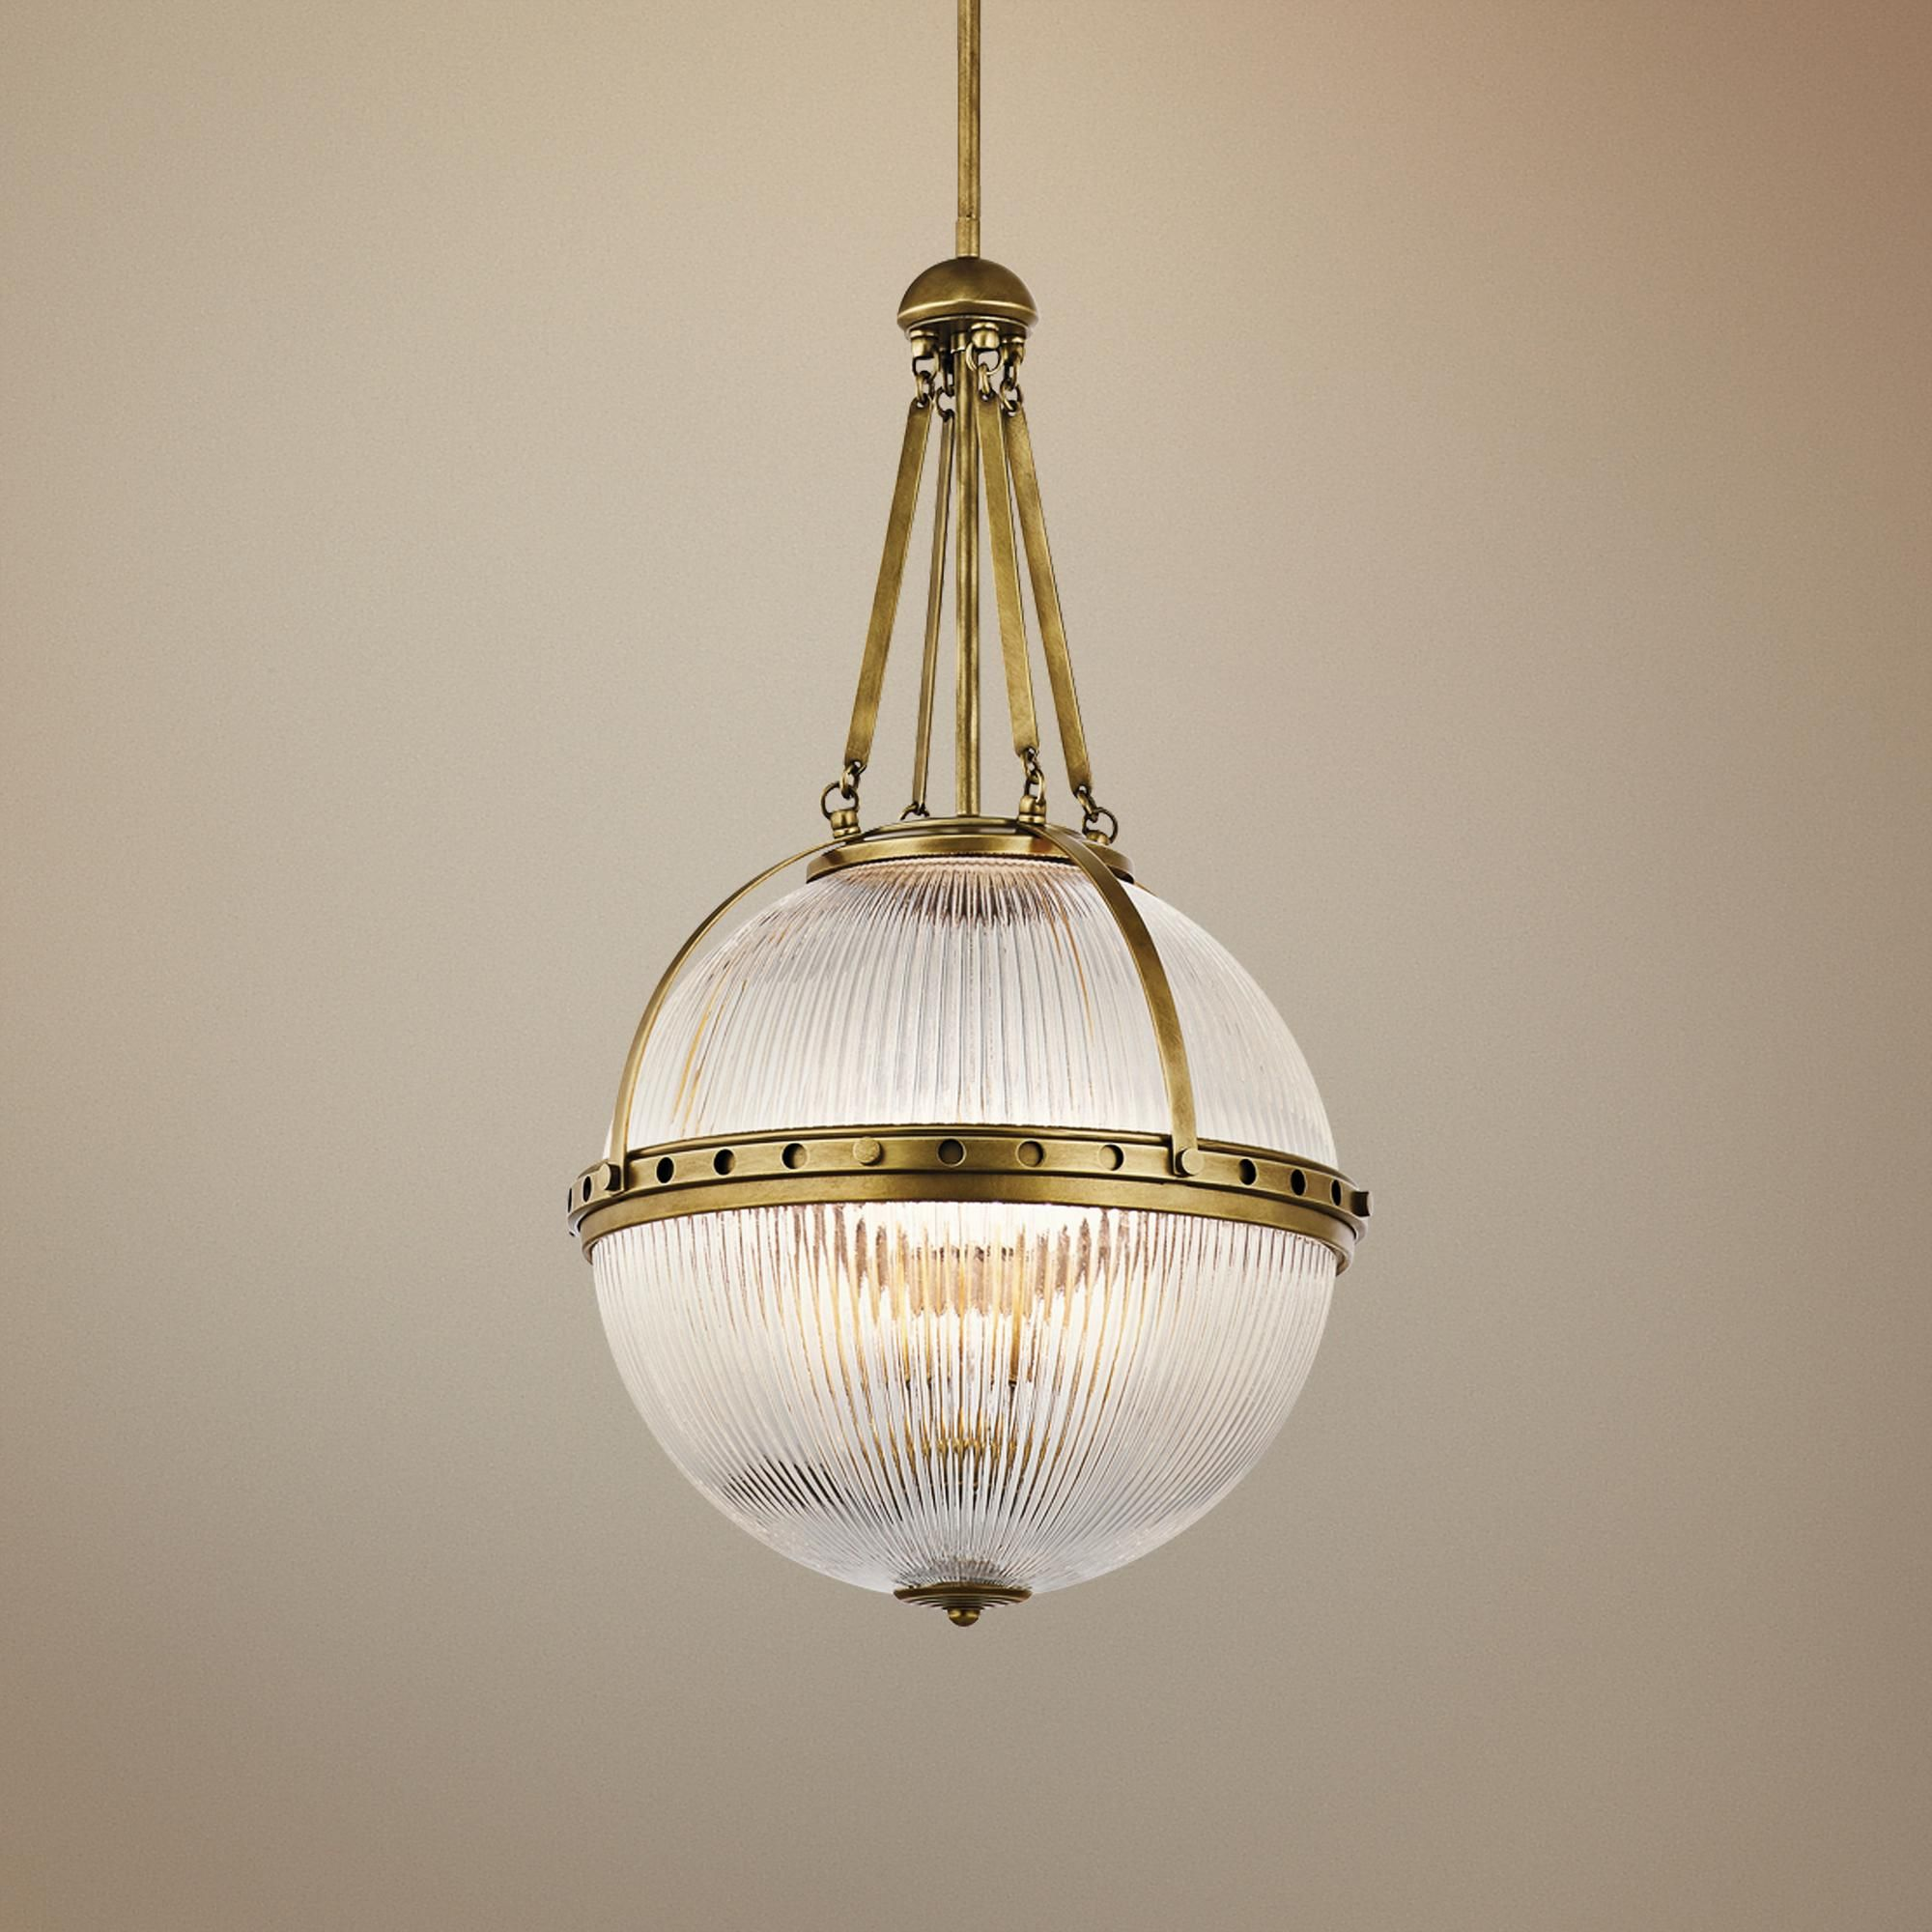 Kichler Aster 15 And One Quarter Inchw Natural Brass Orb 3 Light Pendant Traditional Pendant Lighting 3 Light Pendant Orb Light Fixture